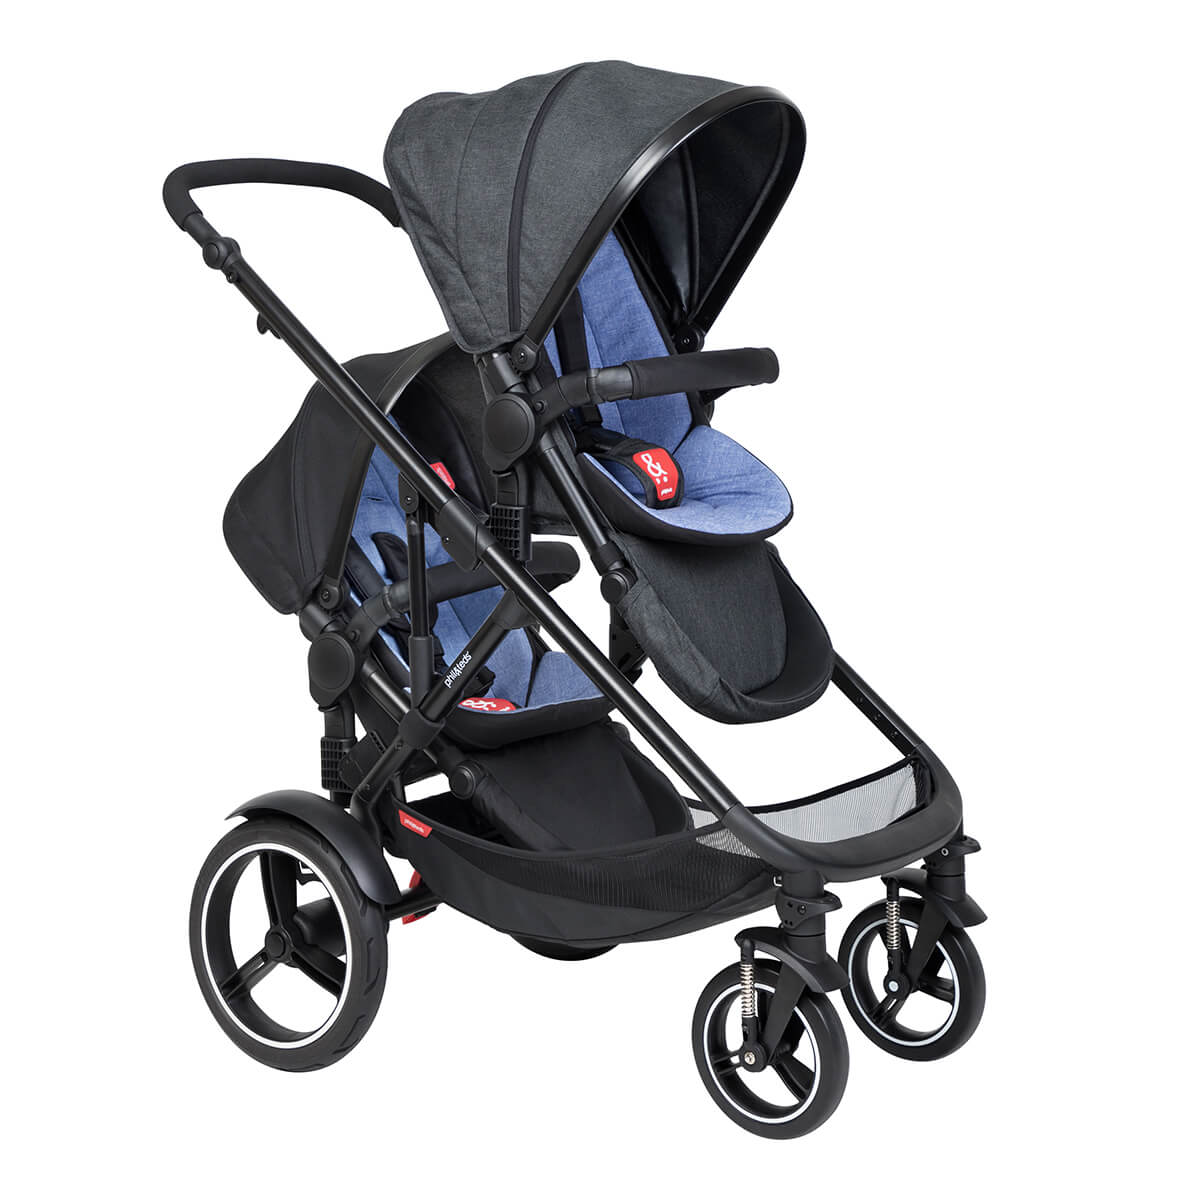 https://cdn.accentuate.io/4546159280233/19119322824809/philteds-voyager-inline-buggy-with-double-kit-in-rear-in-sky-blue-colour-v1625778581018.jpg?1200x1200